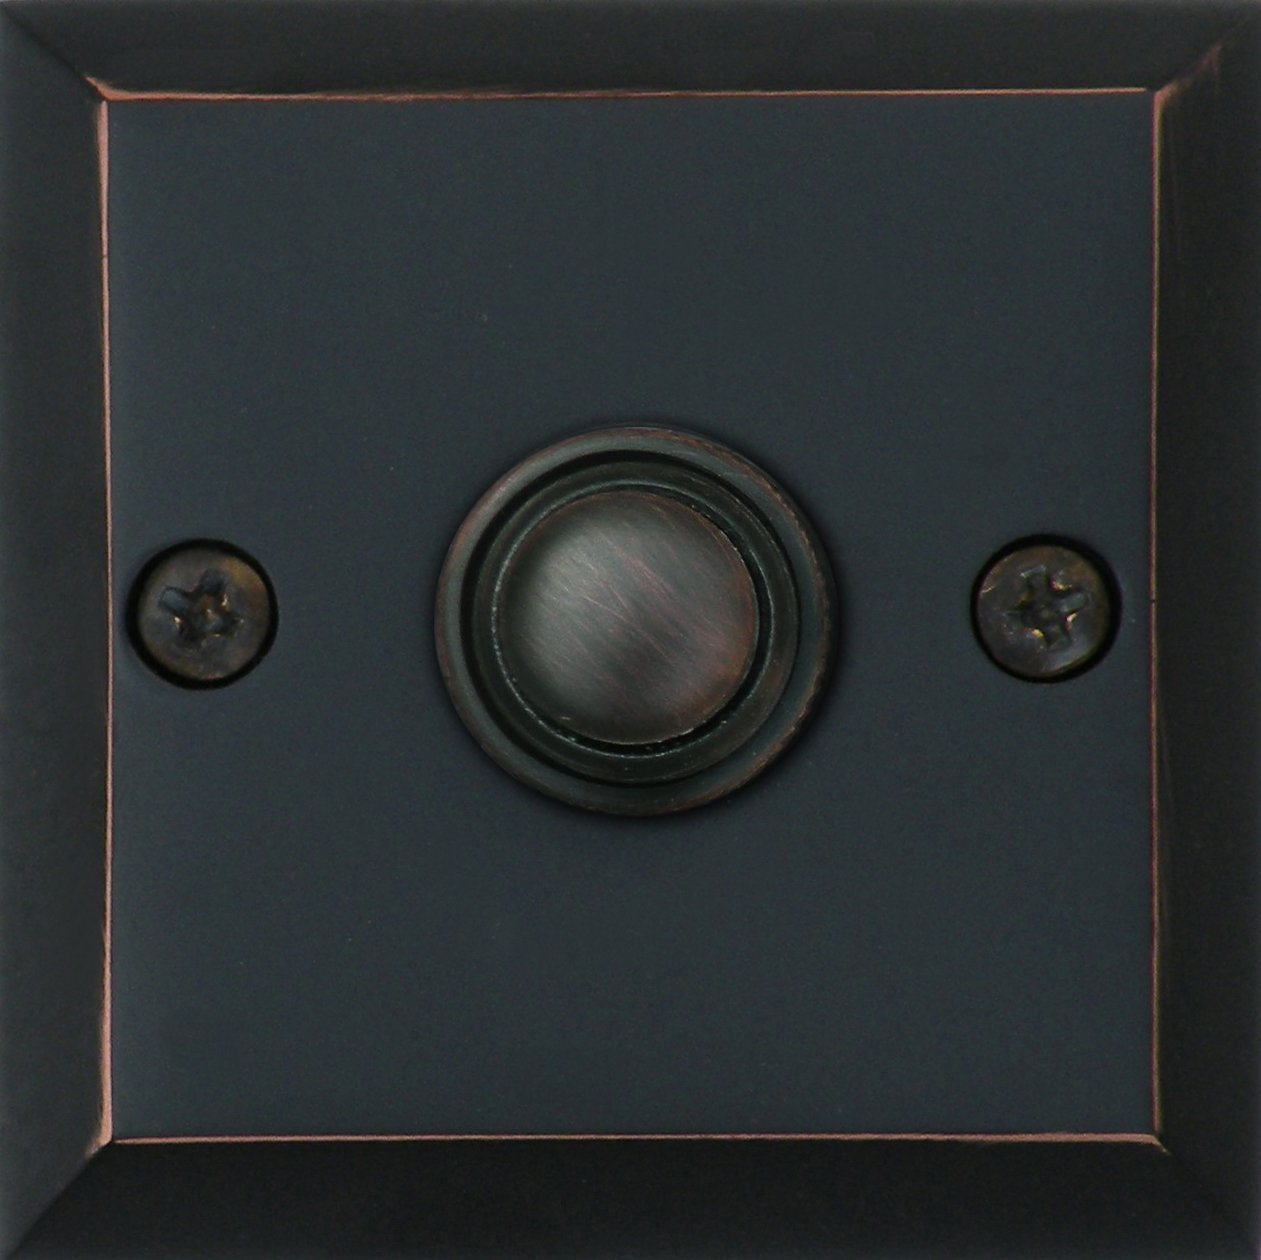 Knoxx Hardware BP3BBXORB Oil Rubbed Bronze 2.5'' Metro Square Door Bell Button, 1-Pack by Knoxx Hardware